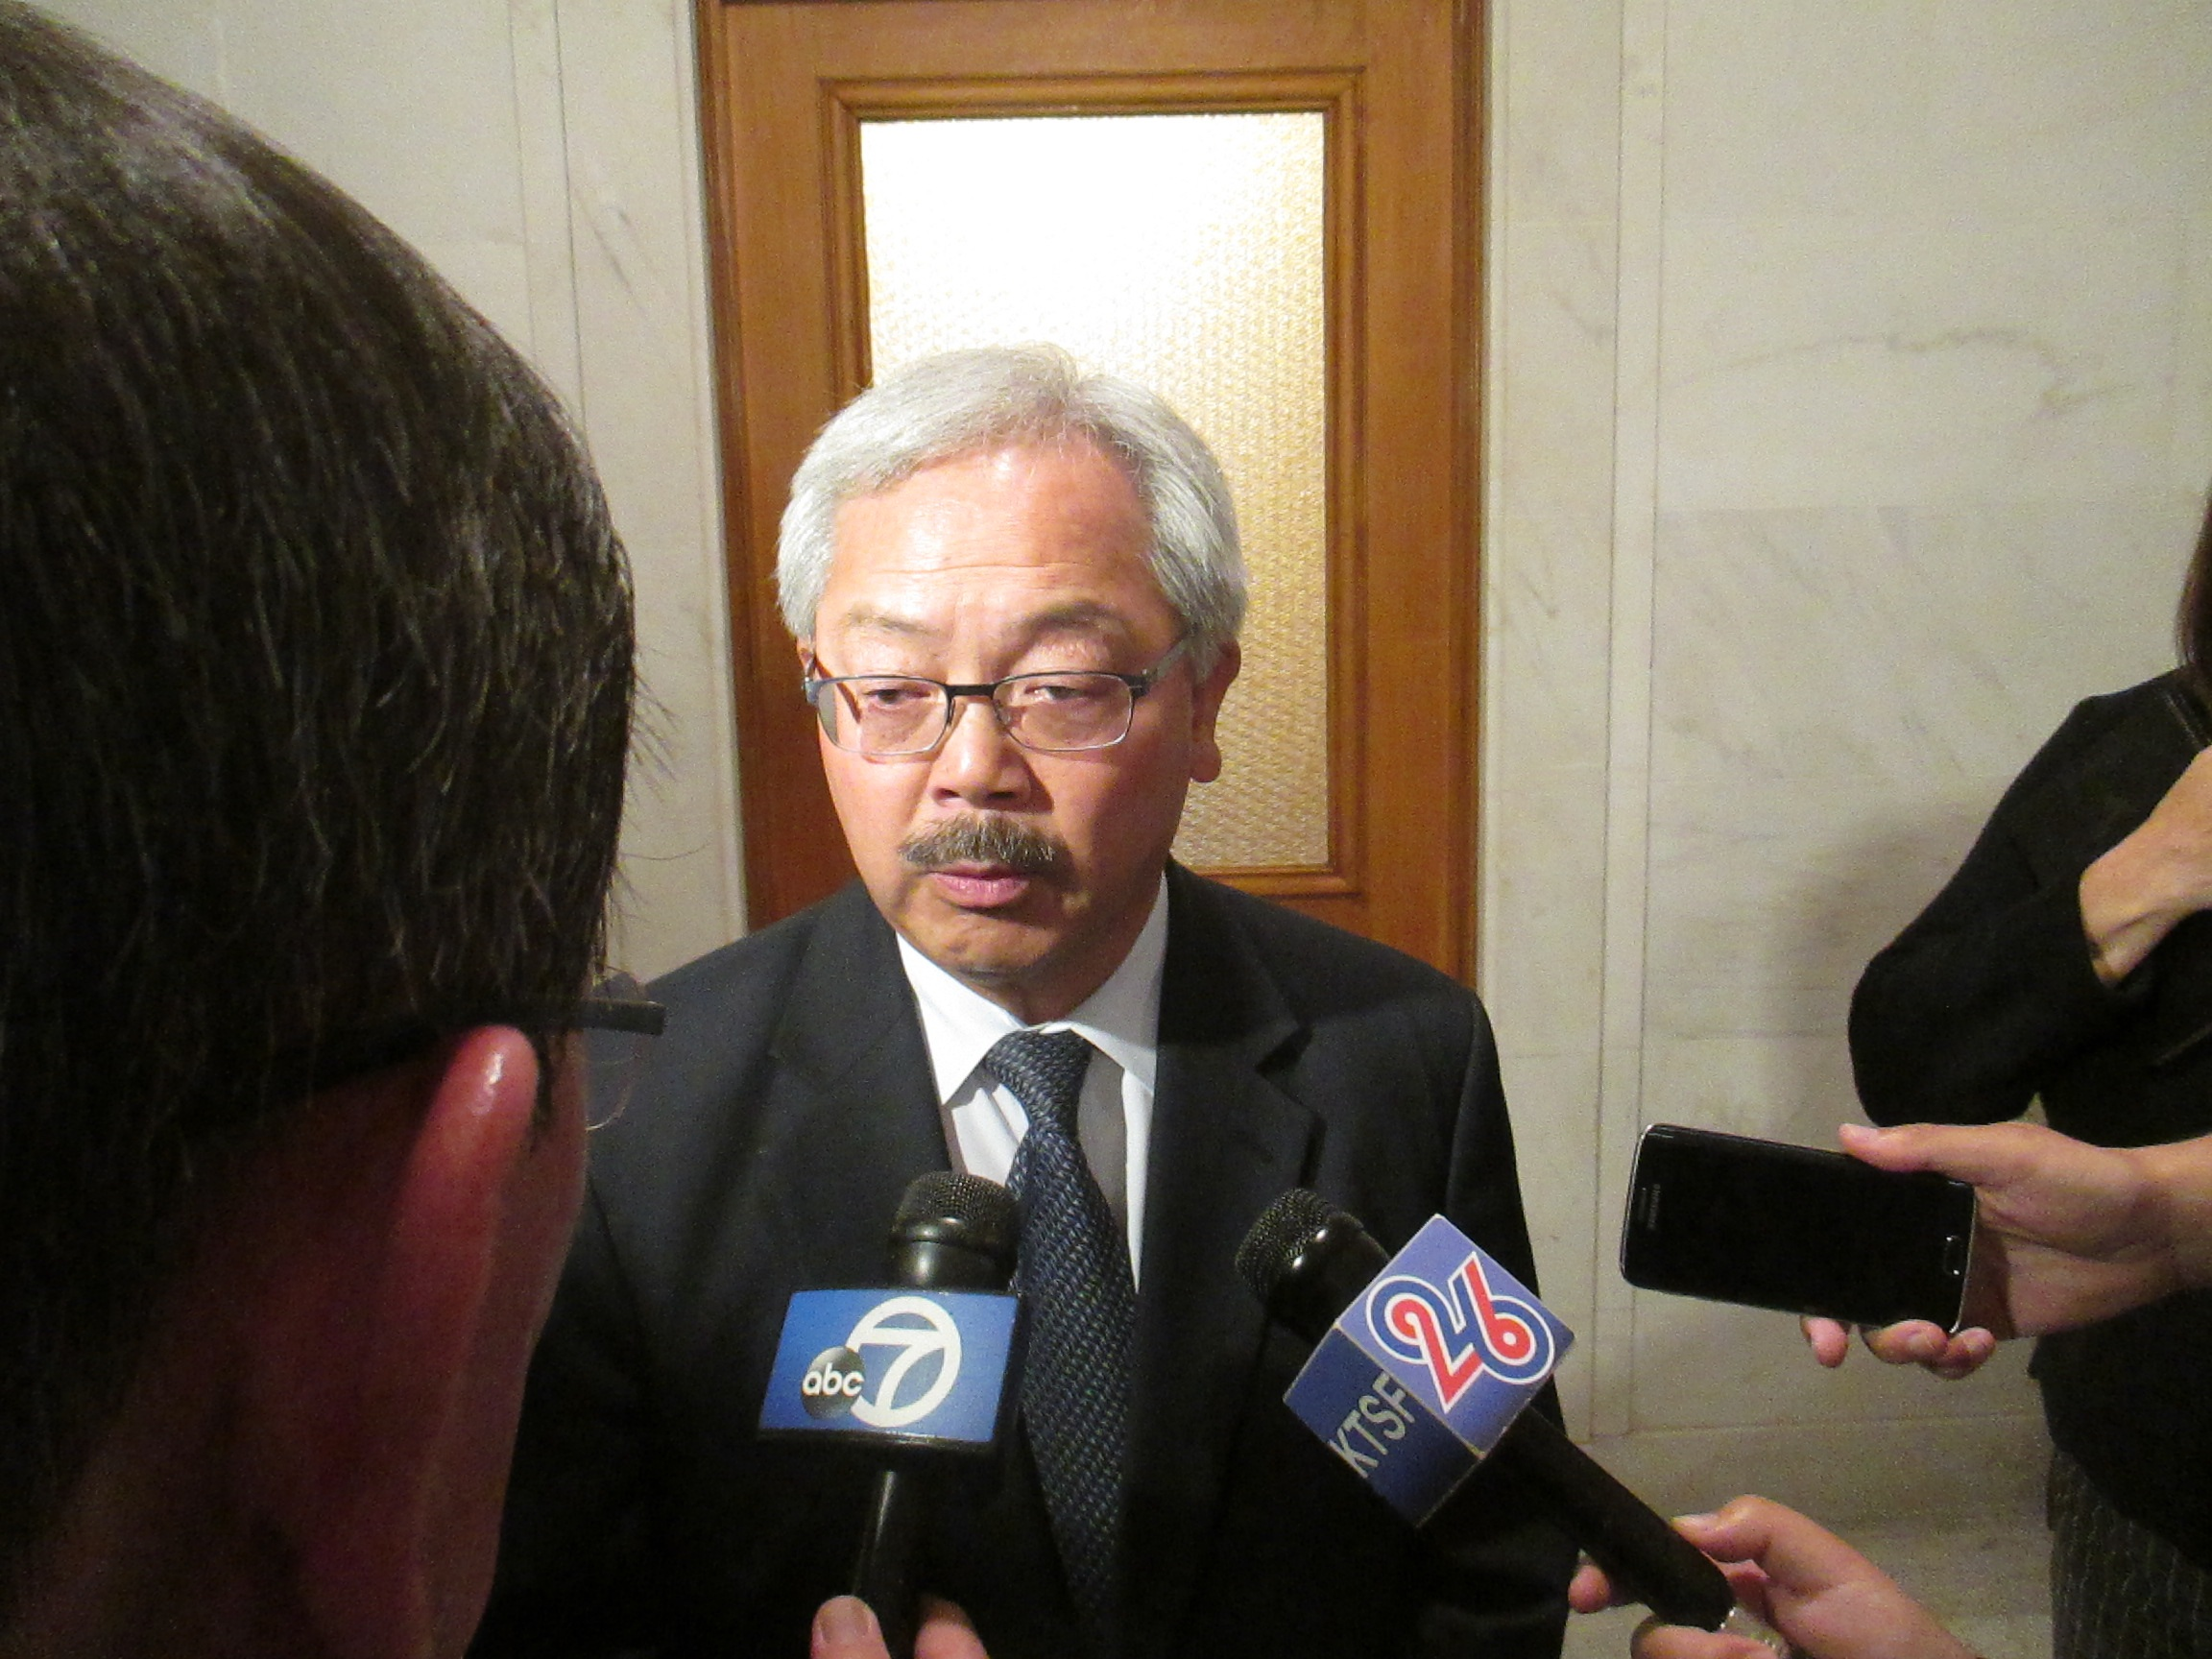 San Francisco Mayor Ed Lee Has Died at 65